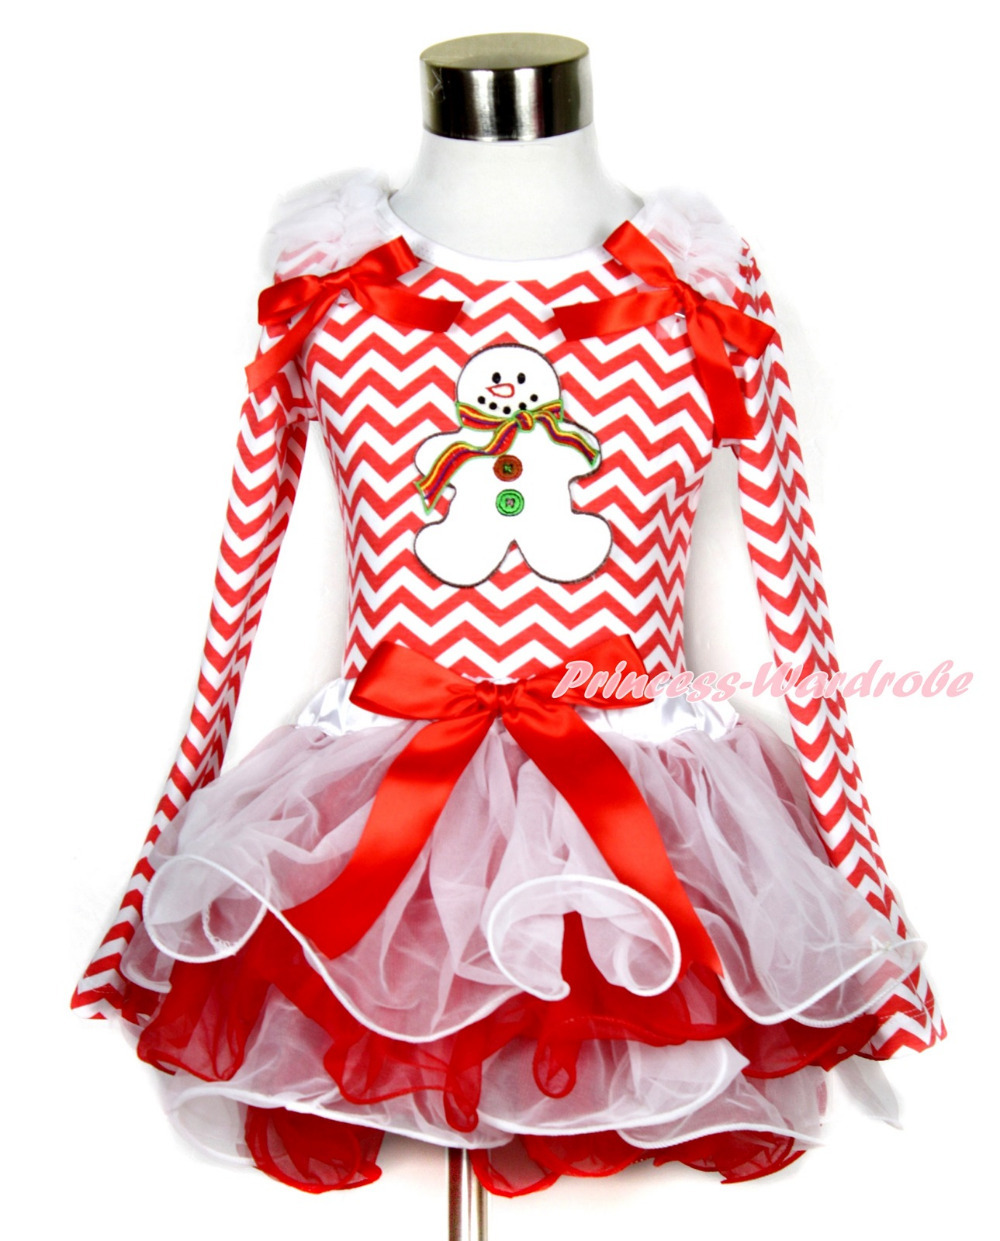 Xmas Red Bow White Red Petal Pettiskirt Red White Wave Long Sleeve Top with White Ruffles Christmas Gingerbread Snowman MAMW332